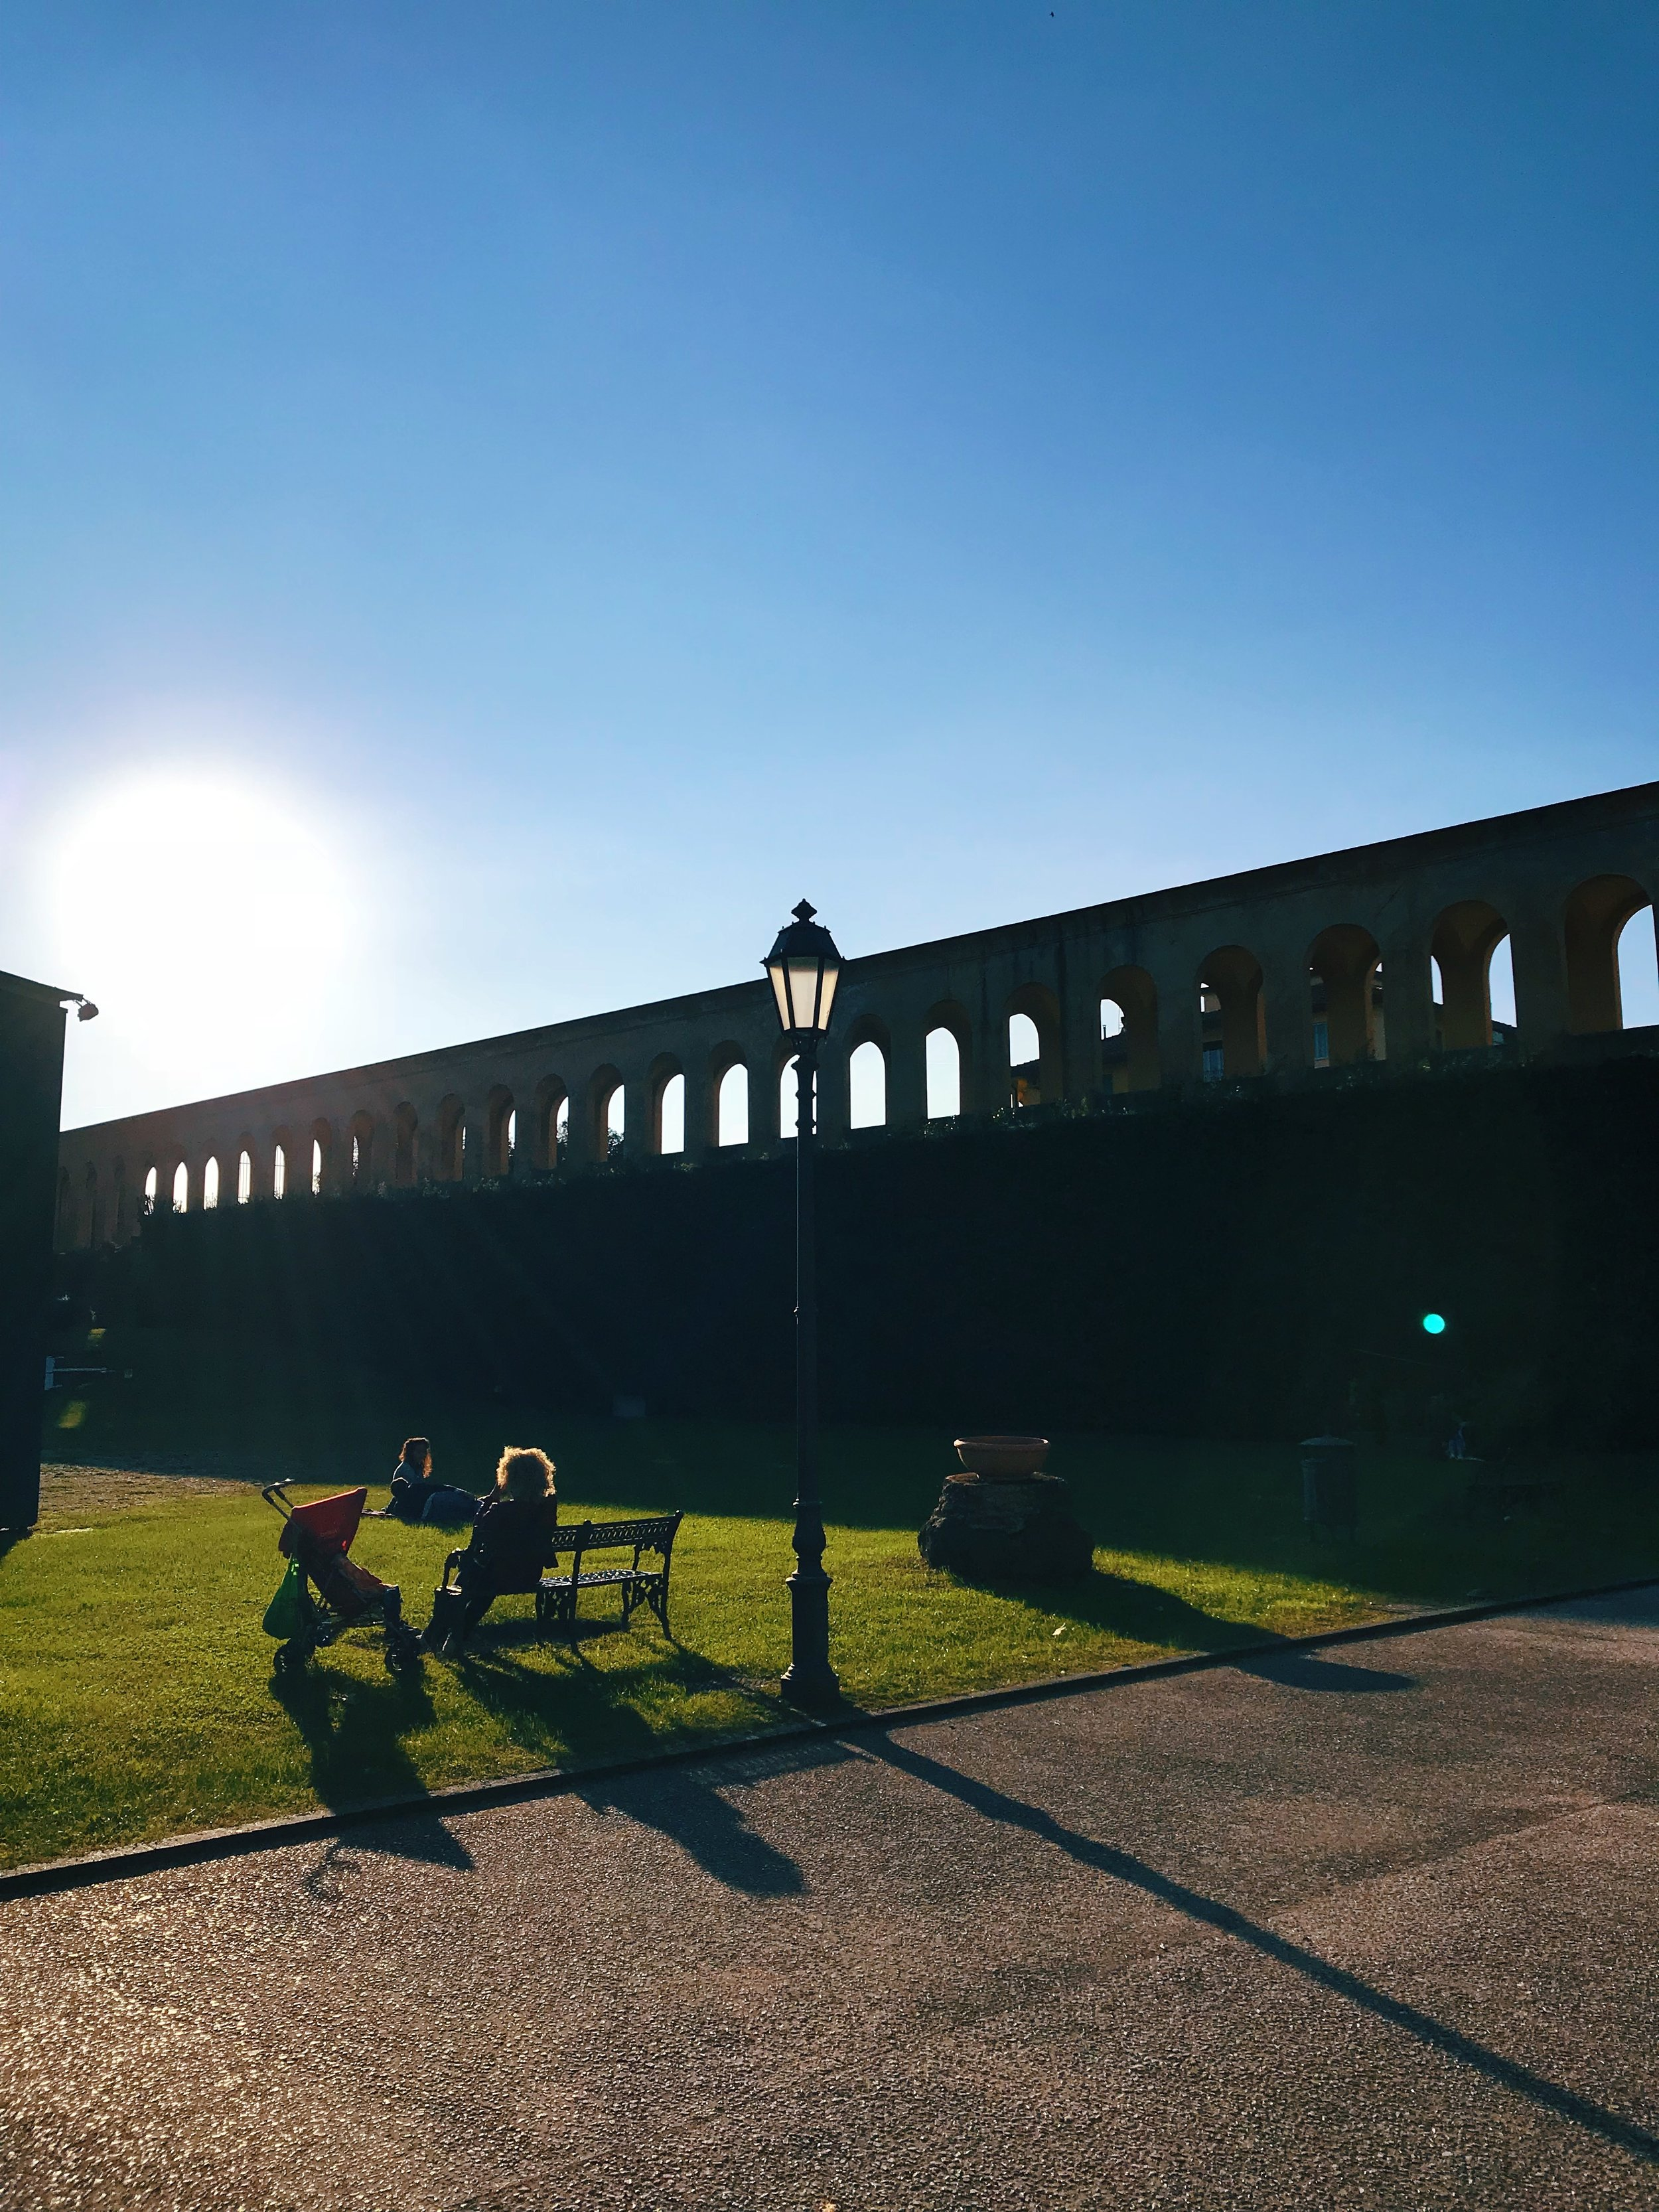 Giardino Scotto   (Scotto's Garden), located inside an old fortress. In the summer, you'll find outdoor films and other activities happening here.